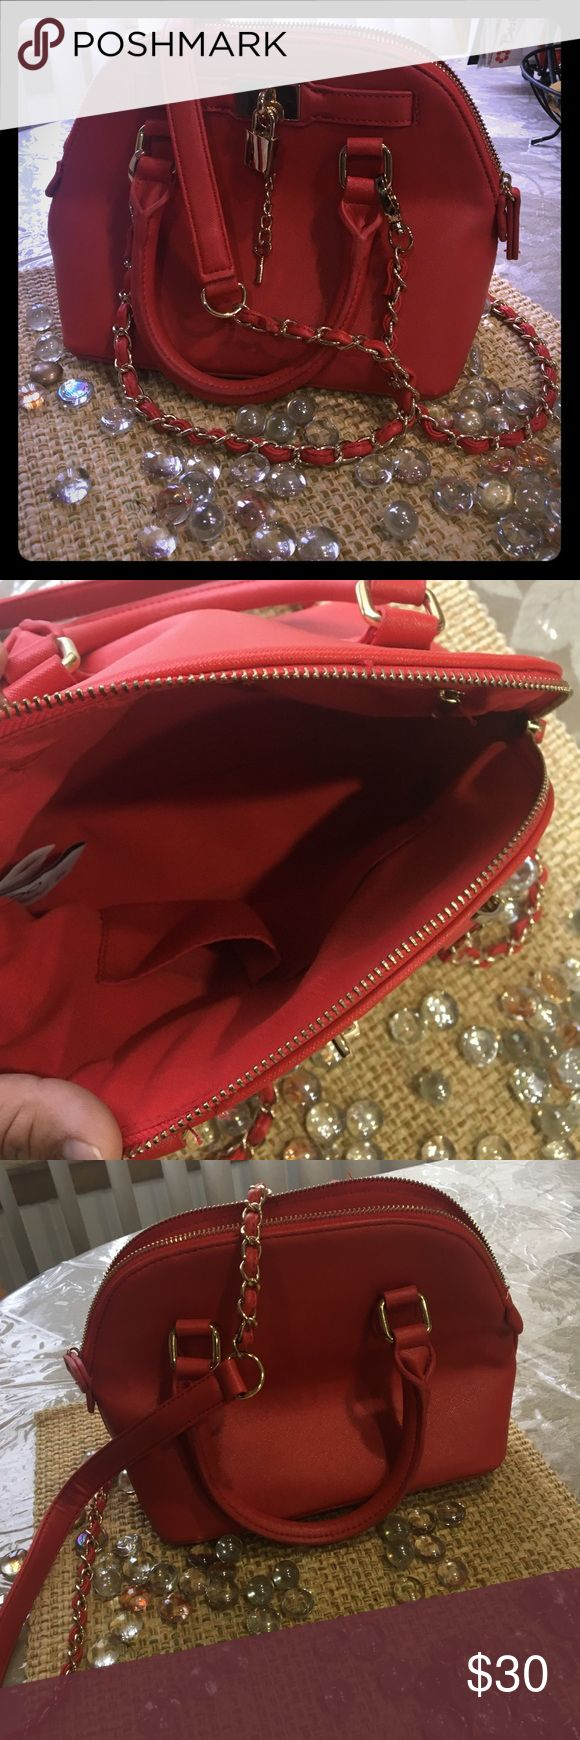 Cute Aldo purse!! Small, yet big enough to carry all your needs!! Red aldo purse. Hardly used!! Some strings hanging from zipper area, but still in great condition!! If interested, please make reasonable offers!! 😘 Aldo Bags